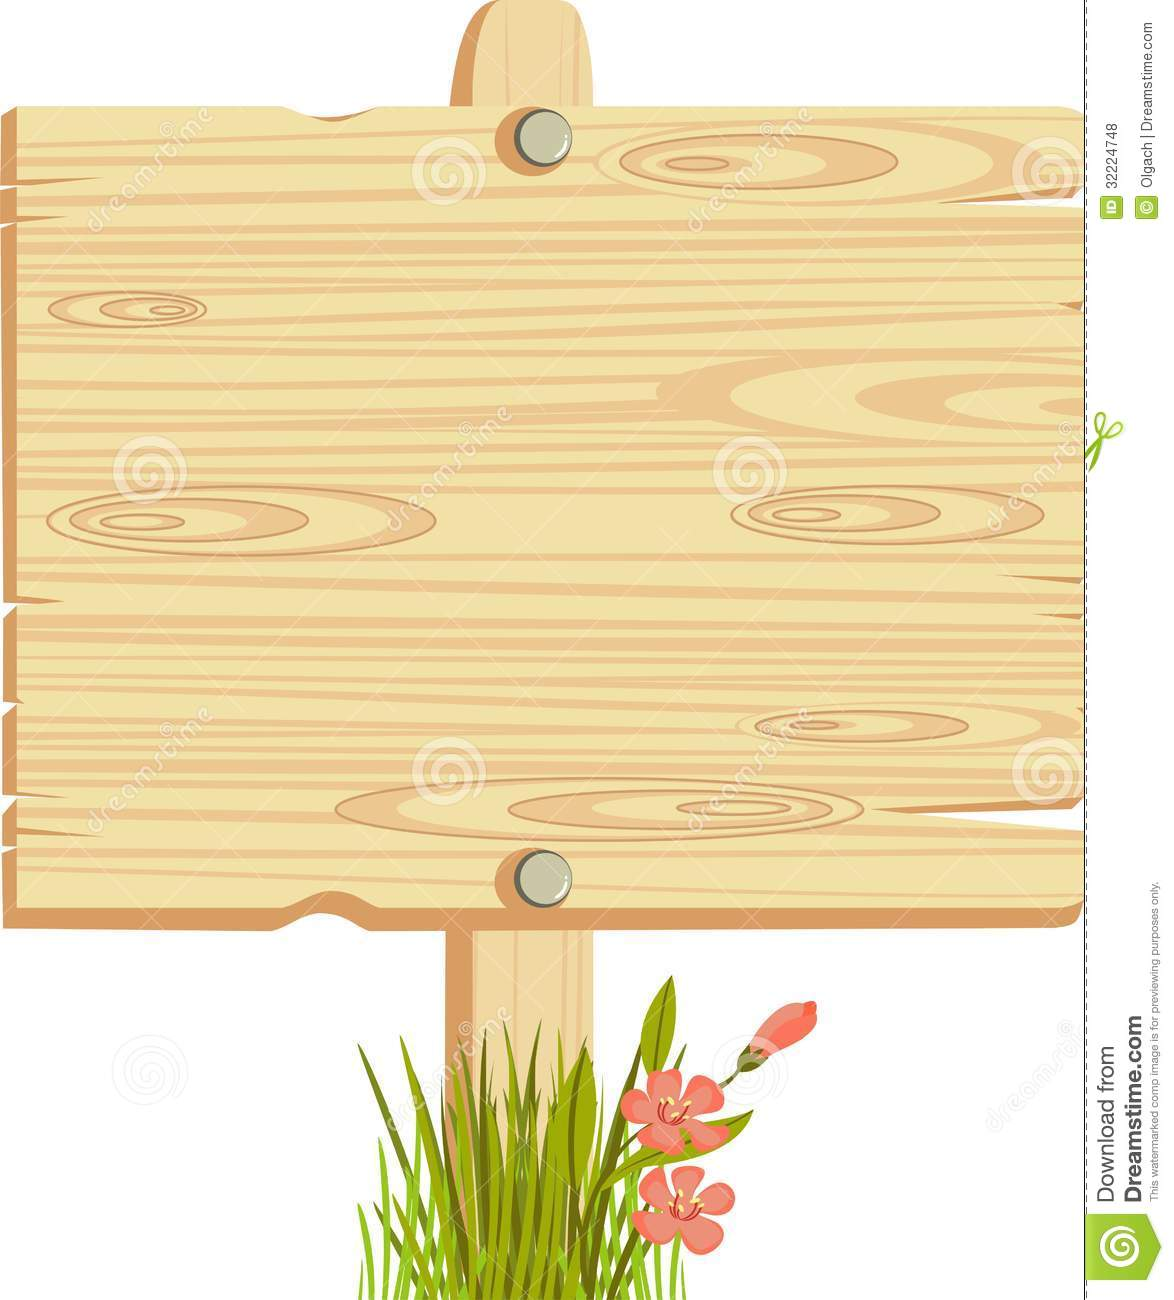 Free wooden sign clipart.